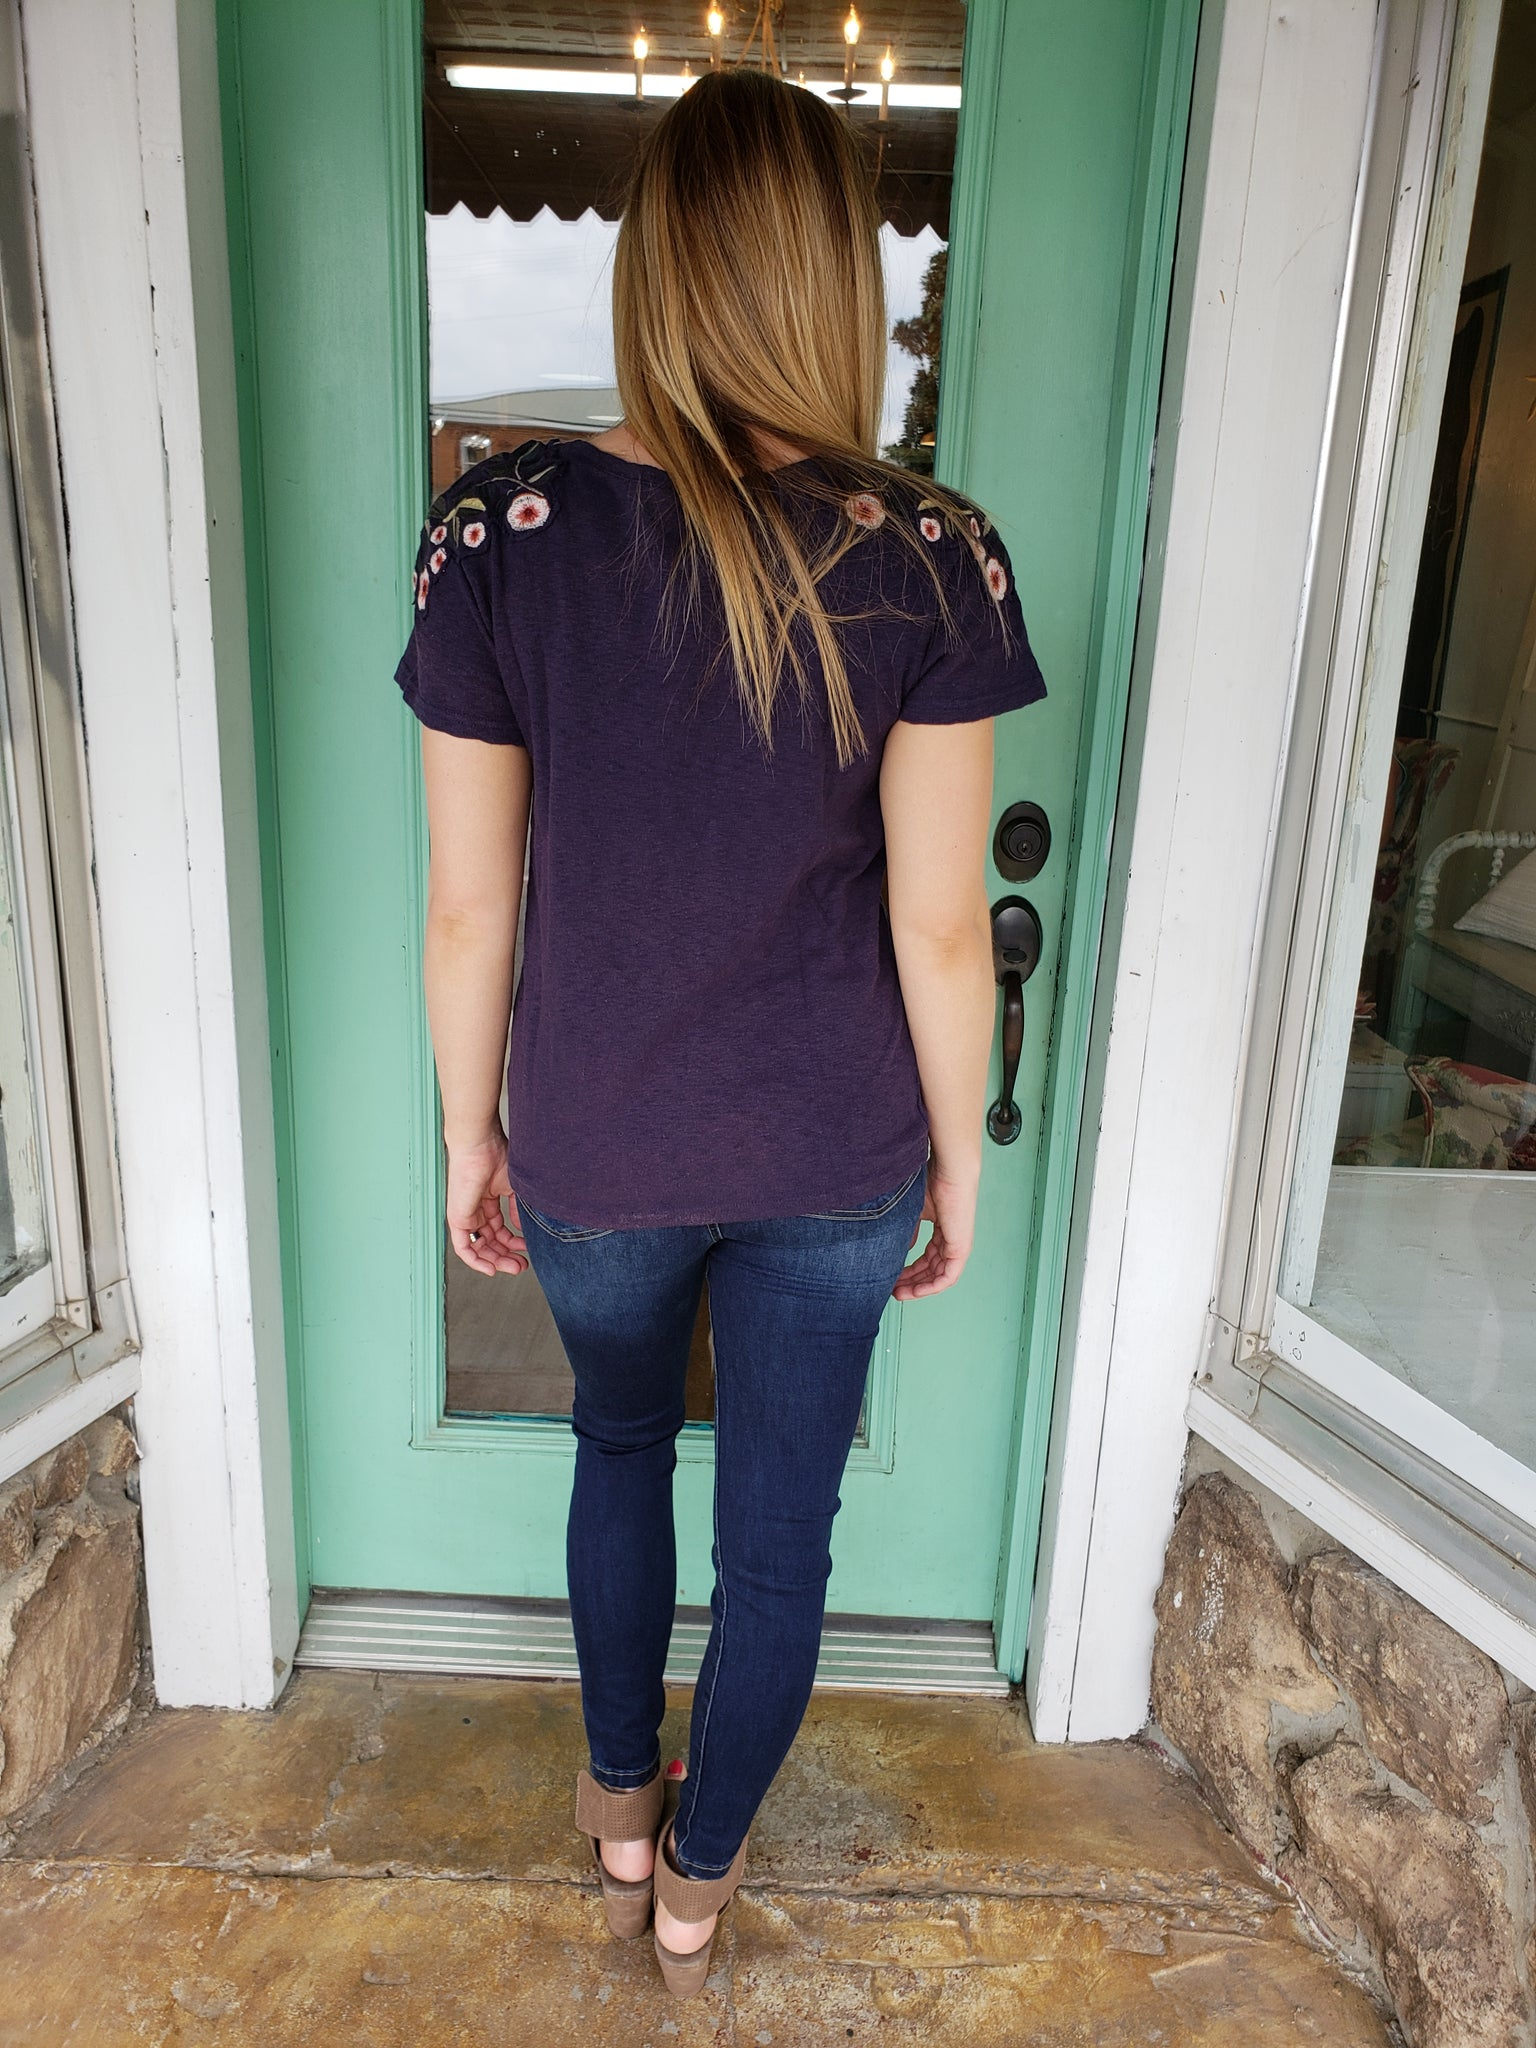 The Belle of Fall Tee - Enclothe Boutique